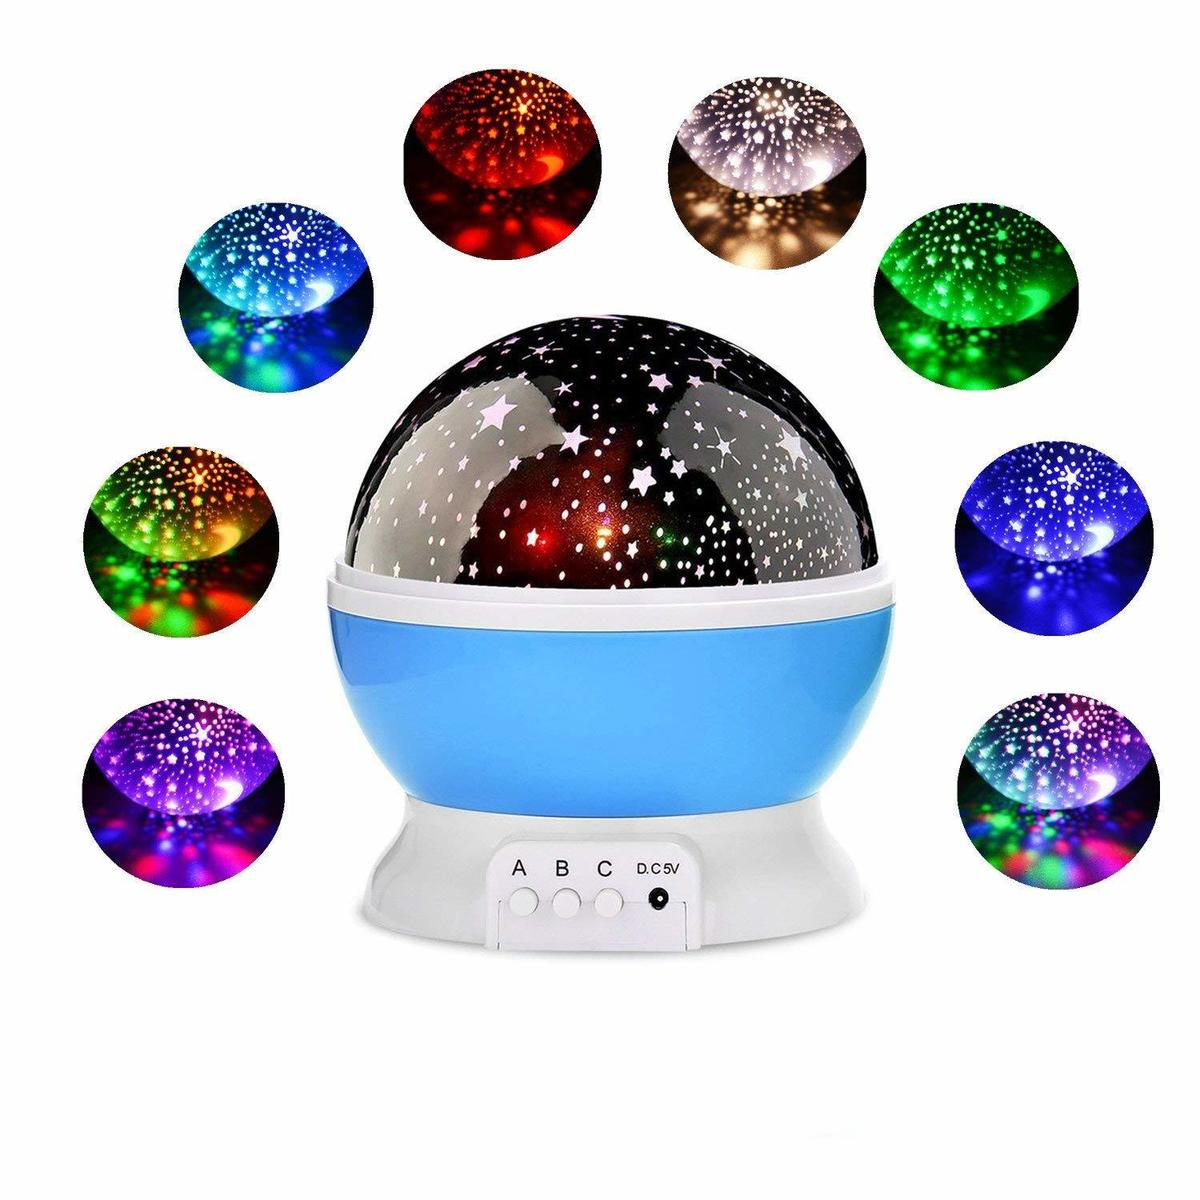 Star Sky Night Light LED Rotating Projector Novelty Lighting Kids Baby Nursery Battery Operated Romantic Moon Cosmos Lamp Gift